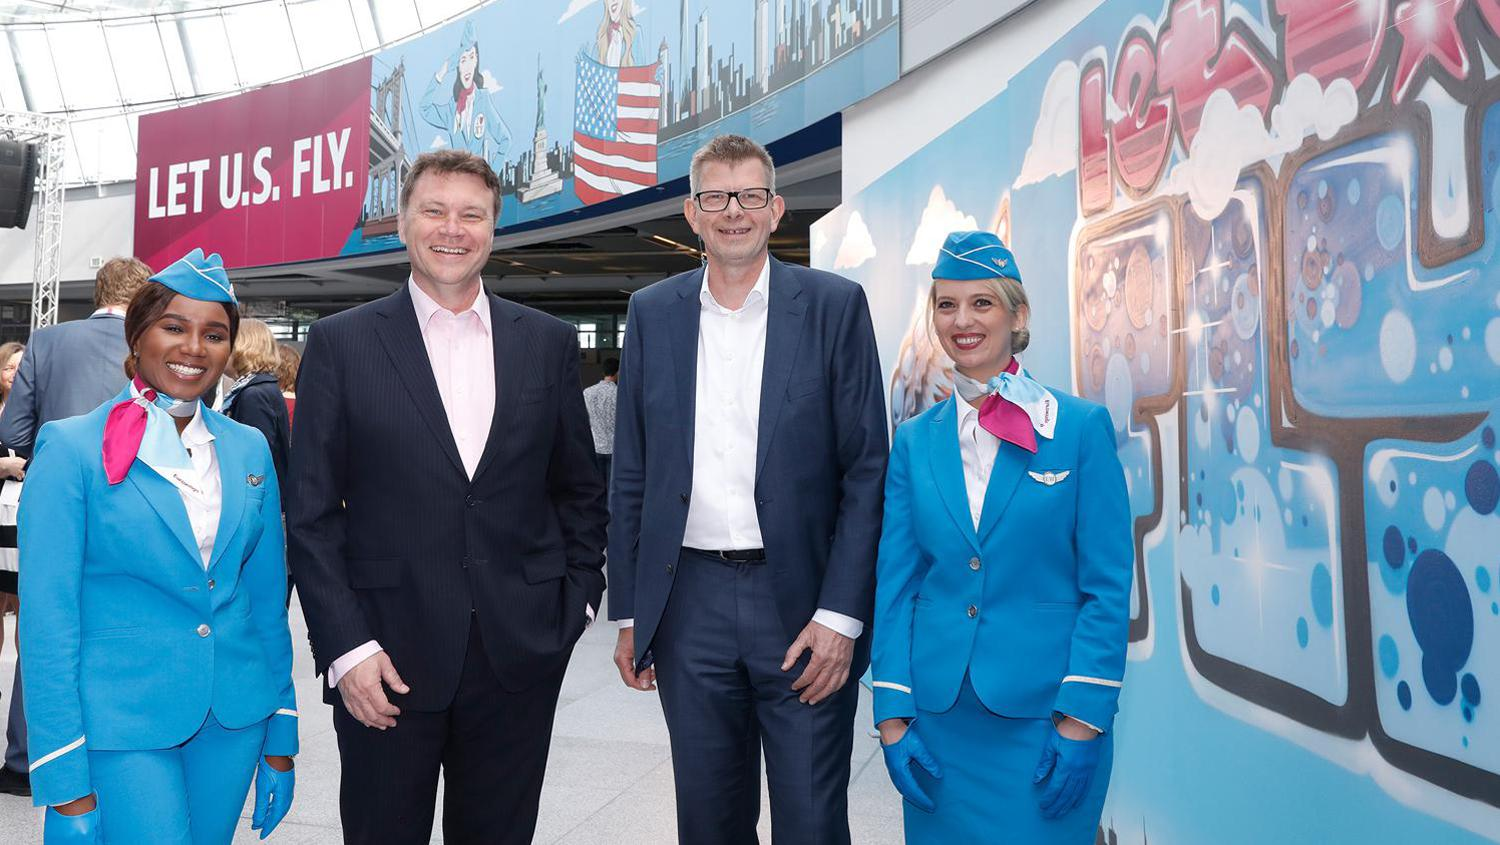 Düsseldorf Airport chief Thomas Schnalke (left) and Eurowings CEO Thorsten Dirks celebrate the New York flights